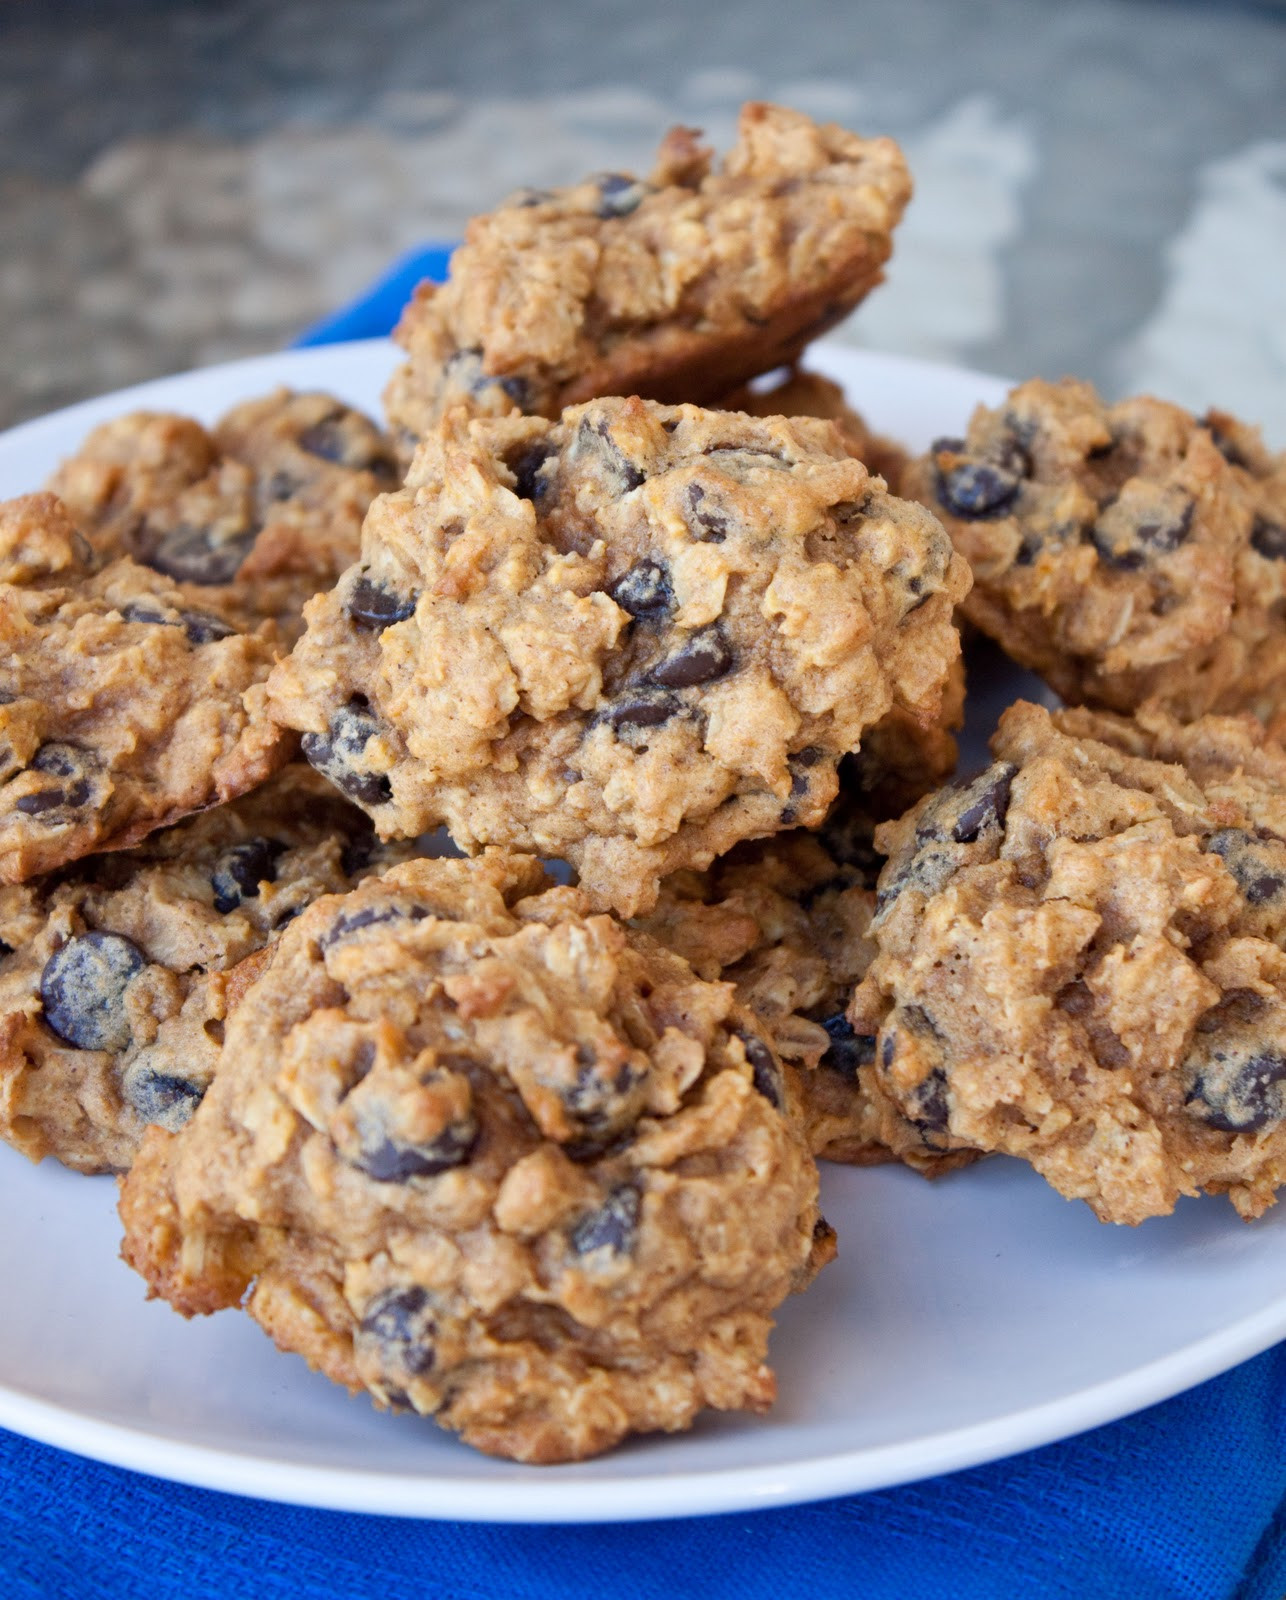 Chocolate Chip Cookies Recipe Healthy  healthy chocolate chip cookie recipes